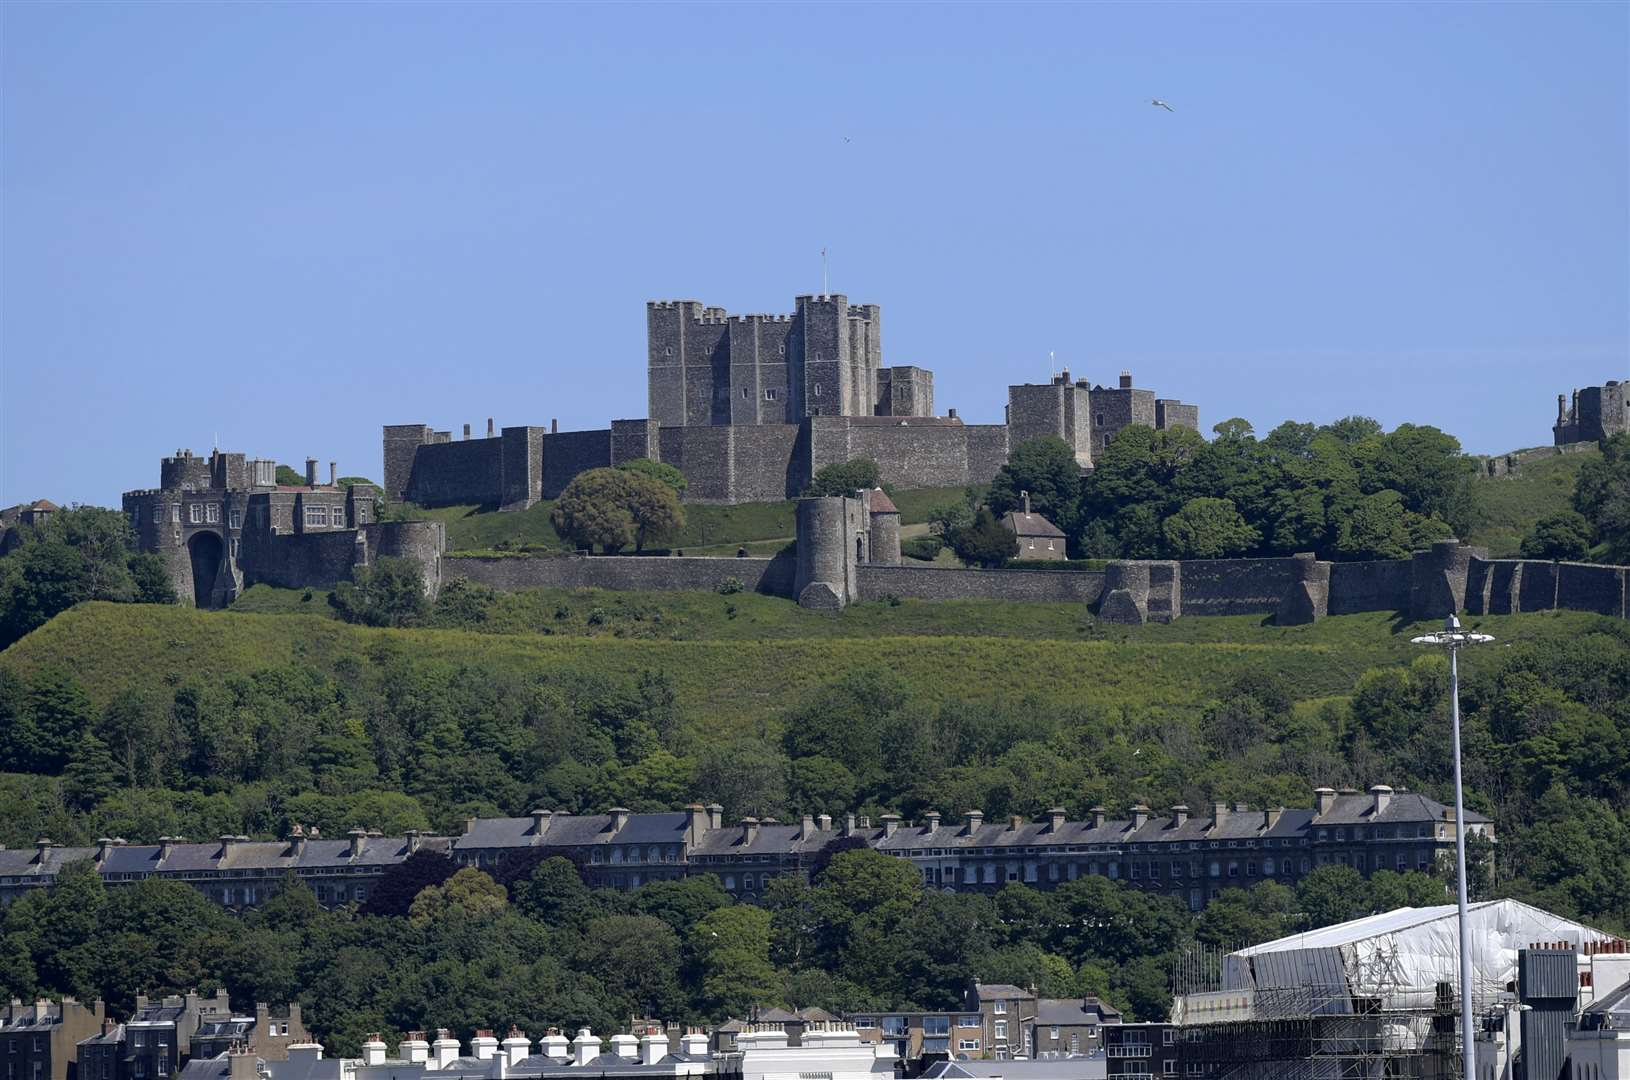 The imposing Dover Castle was built by the Normans in the years after the 1066 invasion